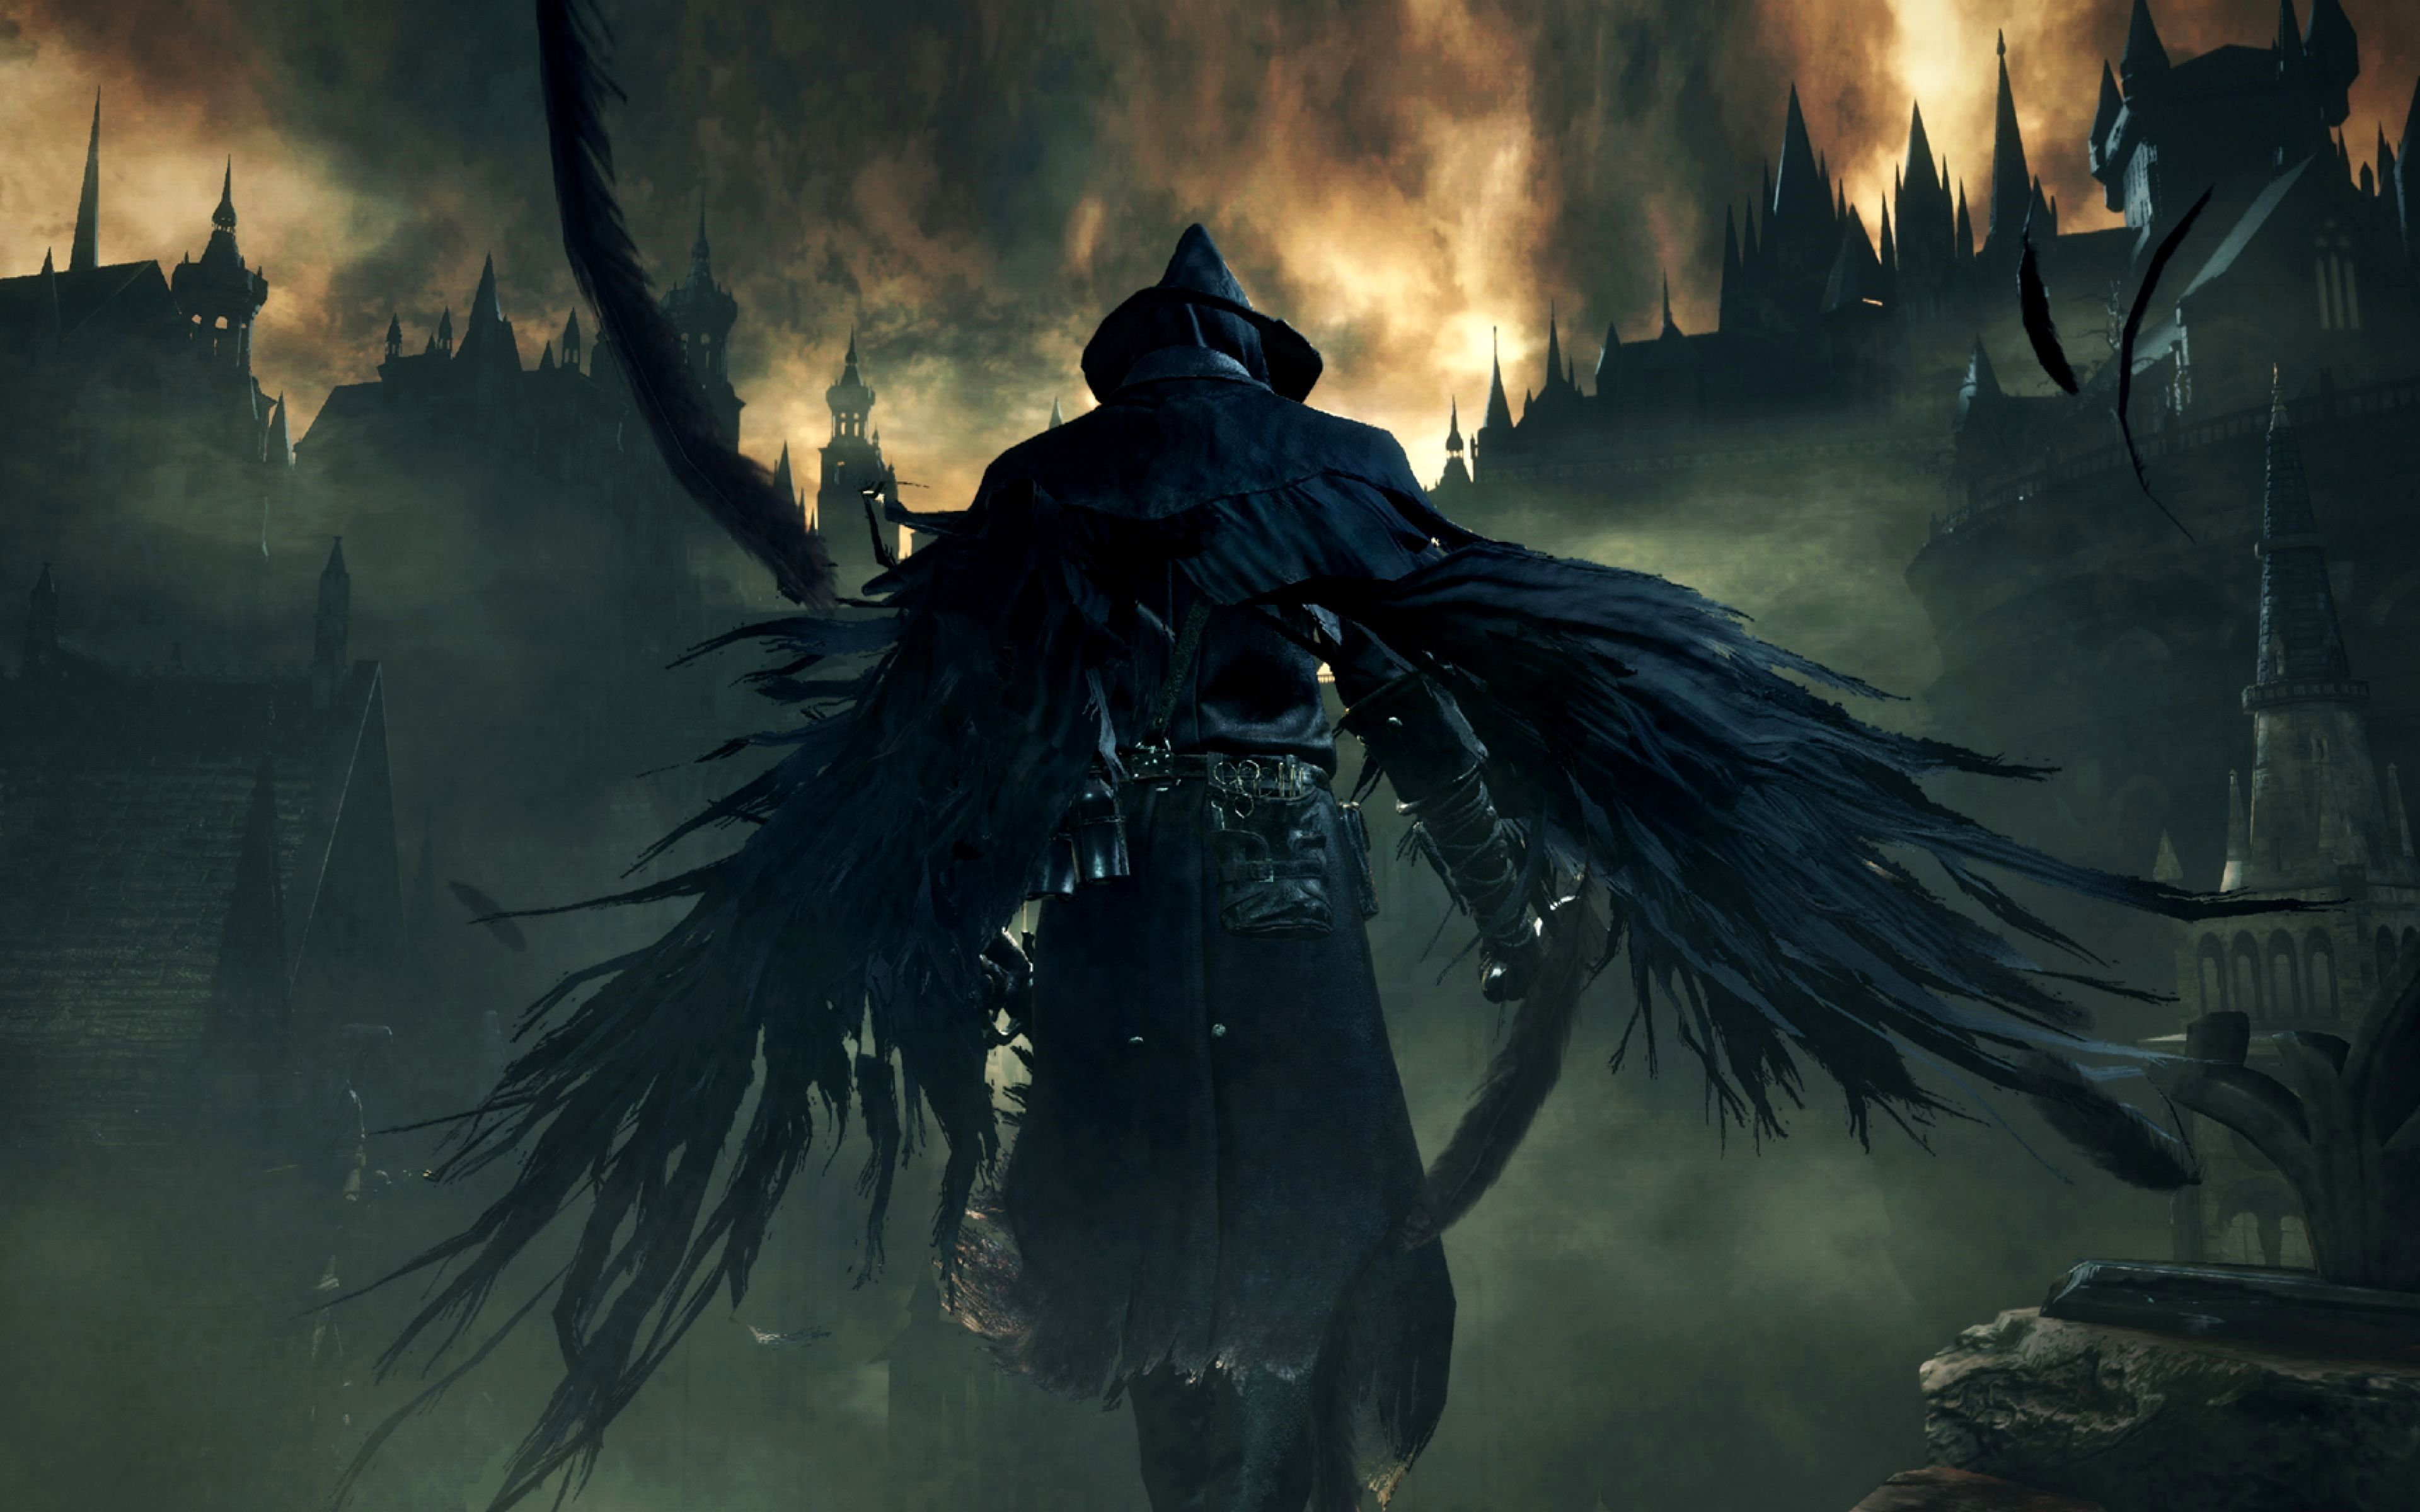 Wallpaper 4k Dark Souls Ideas Di 2020 Dark Souls